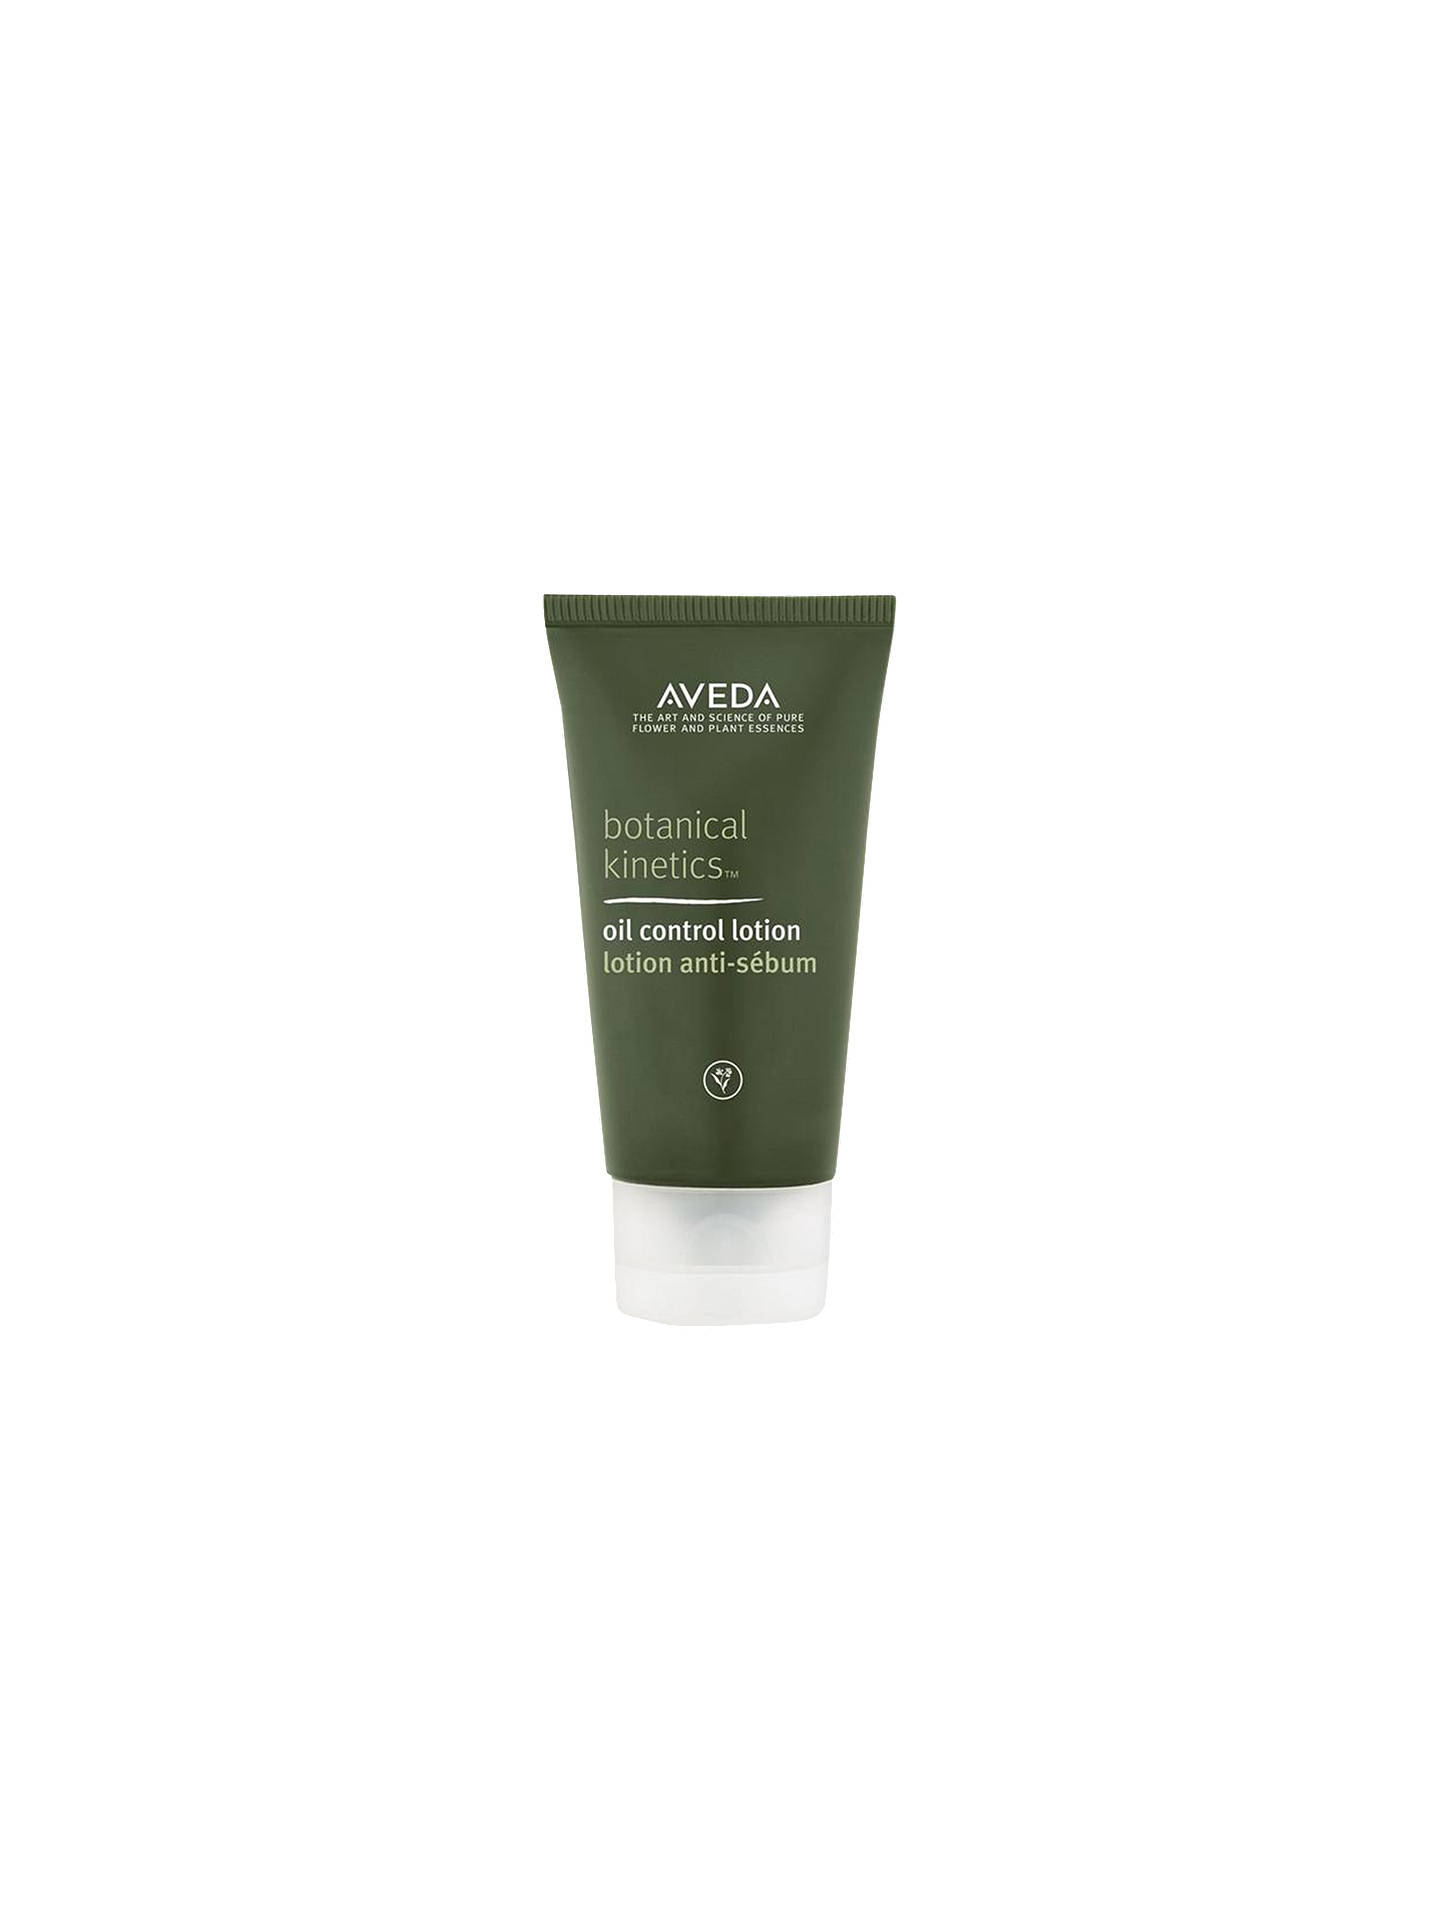 BuyAVEDA Botanical Kinetics™ Oil Control Lotion, 50ml Online at johnlewis.com